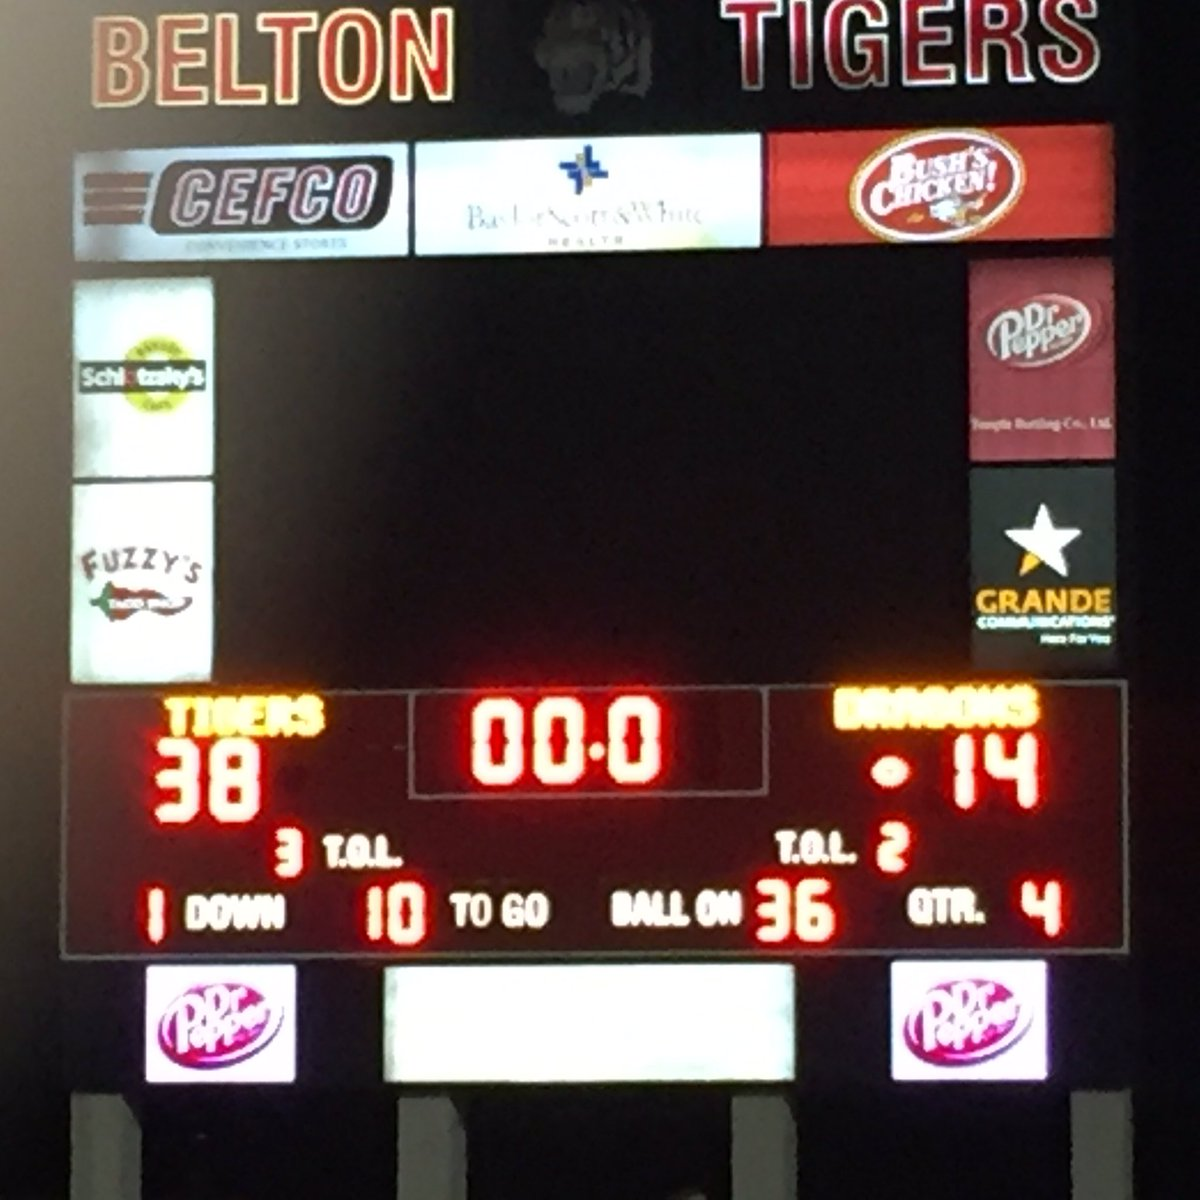 Belated congrats to the Tigers last night. Big win. Let&#39;s keep it rolling into district play. #BOE #Physical <br>http://pic.twitter.com/bKIHDduoXR